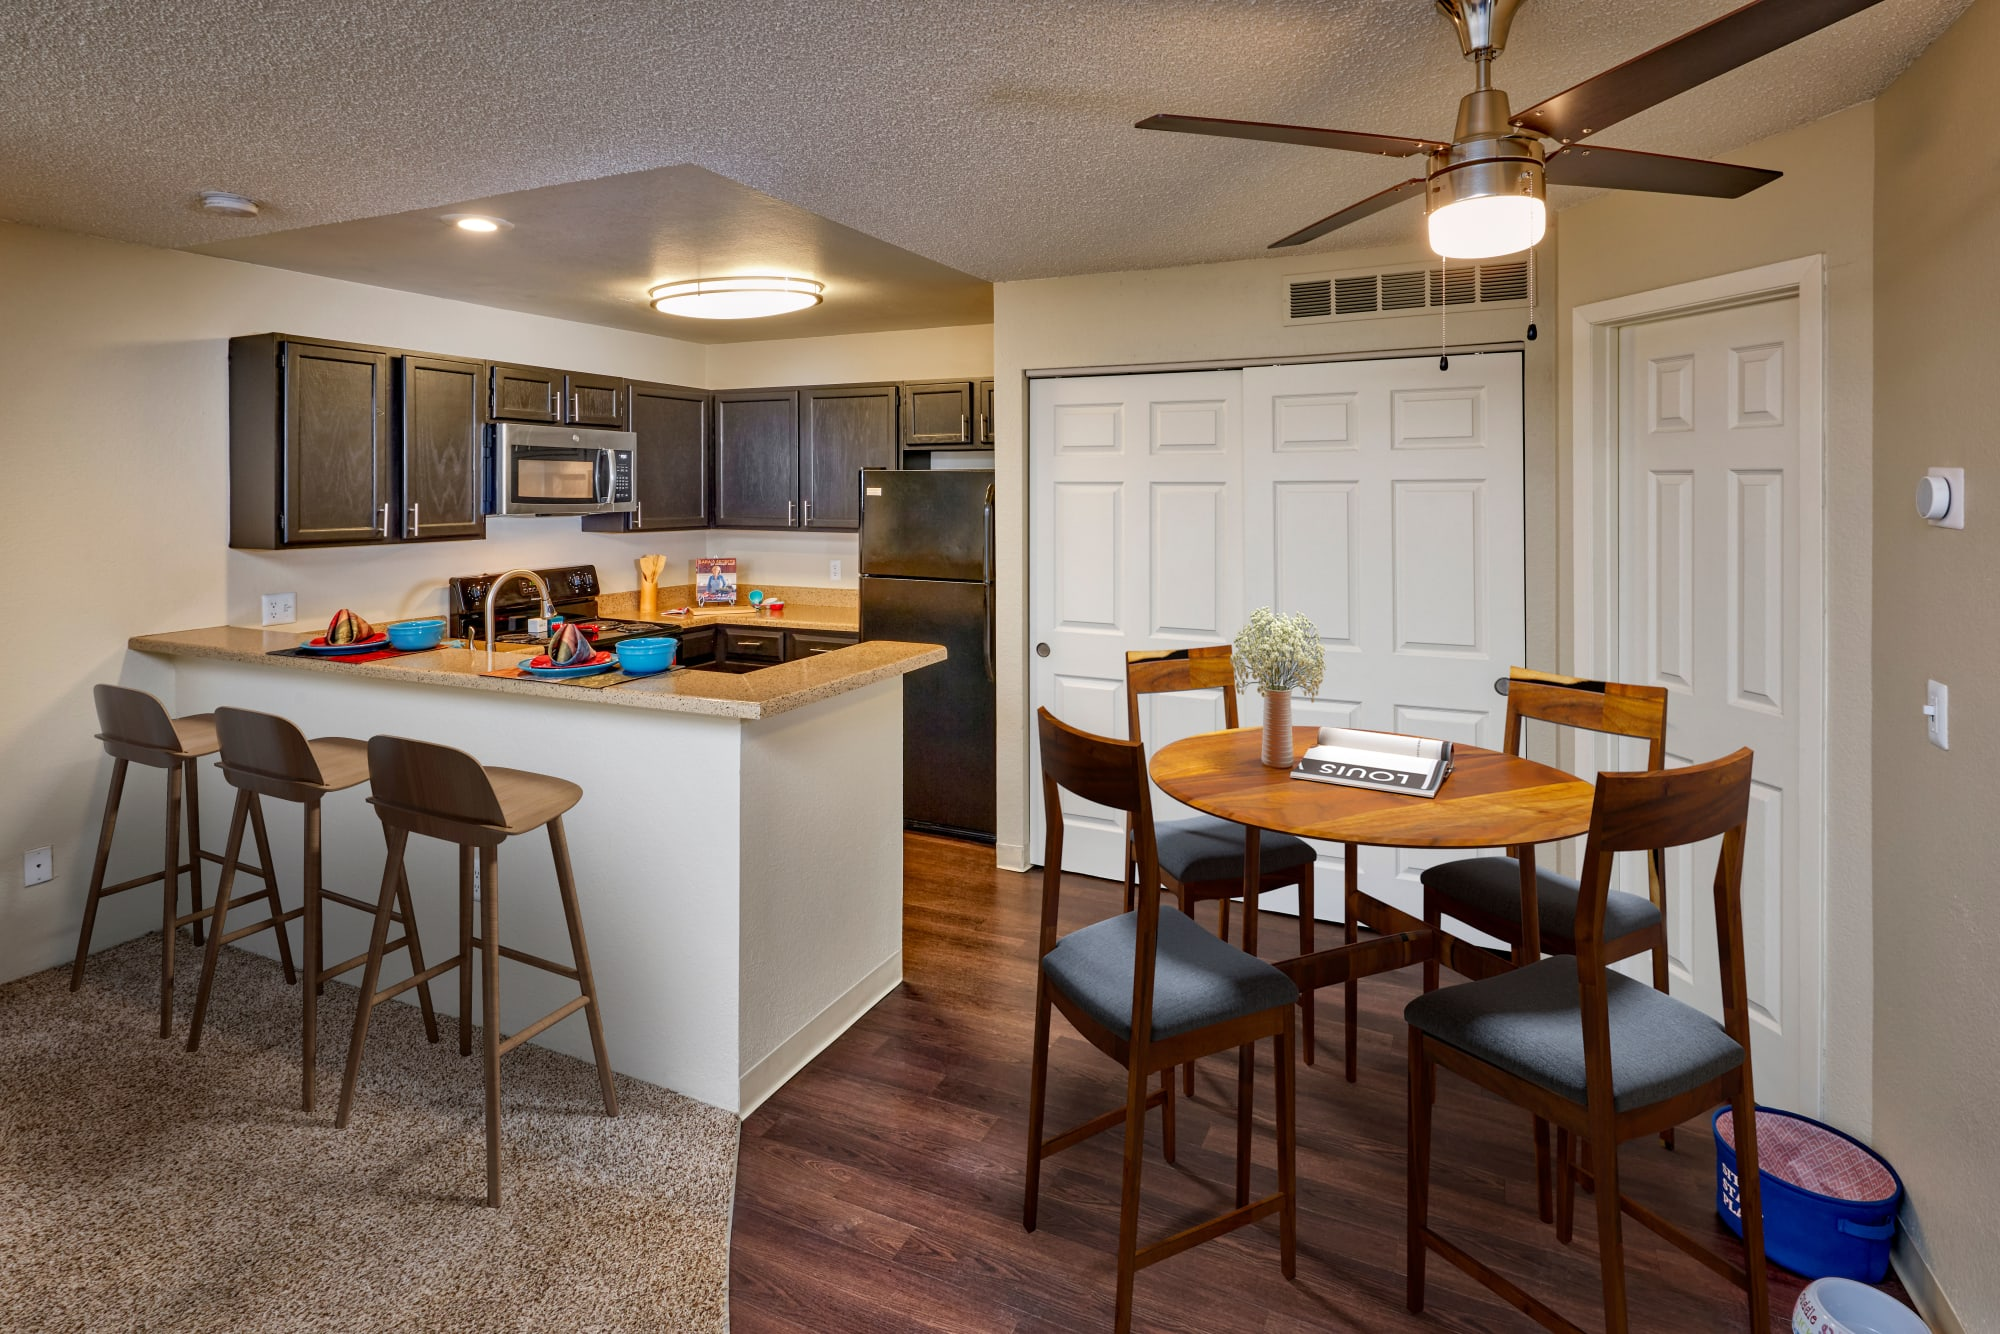 Kitchen overlooking the living room in an open floor plan at Bluesky Landing Apartments in Lakewood, Colorado